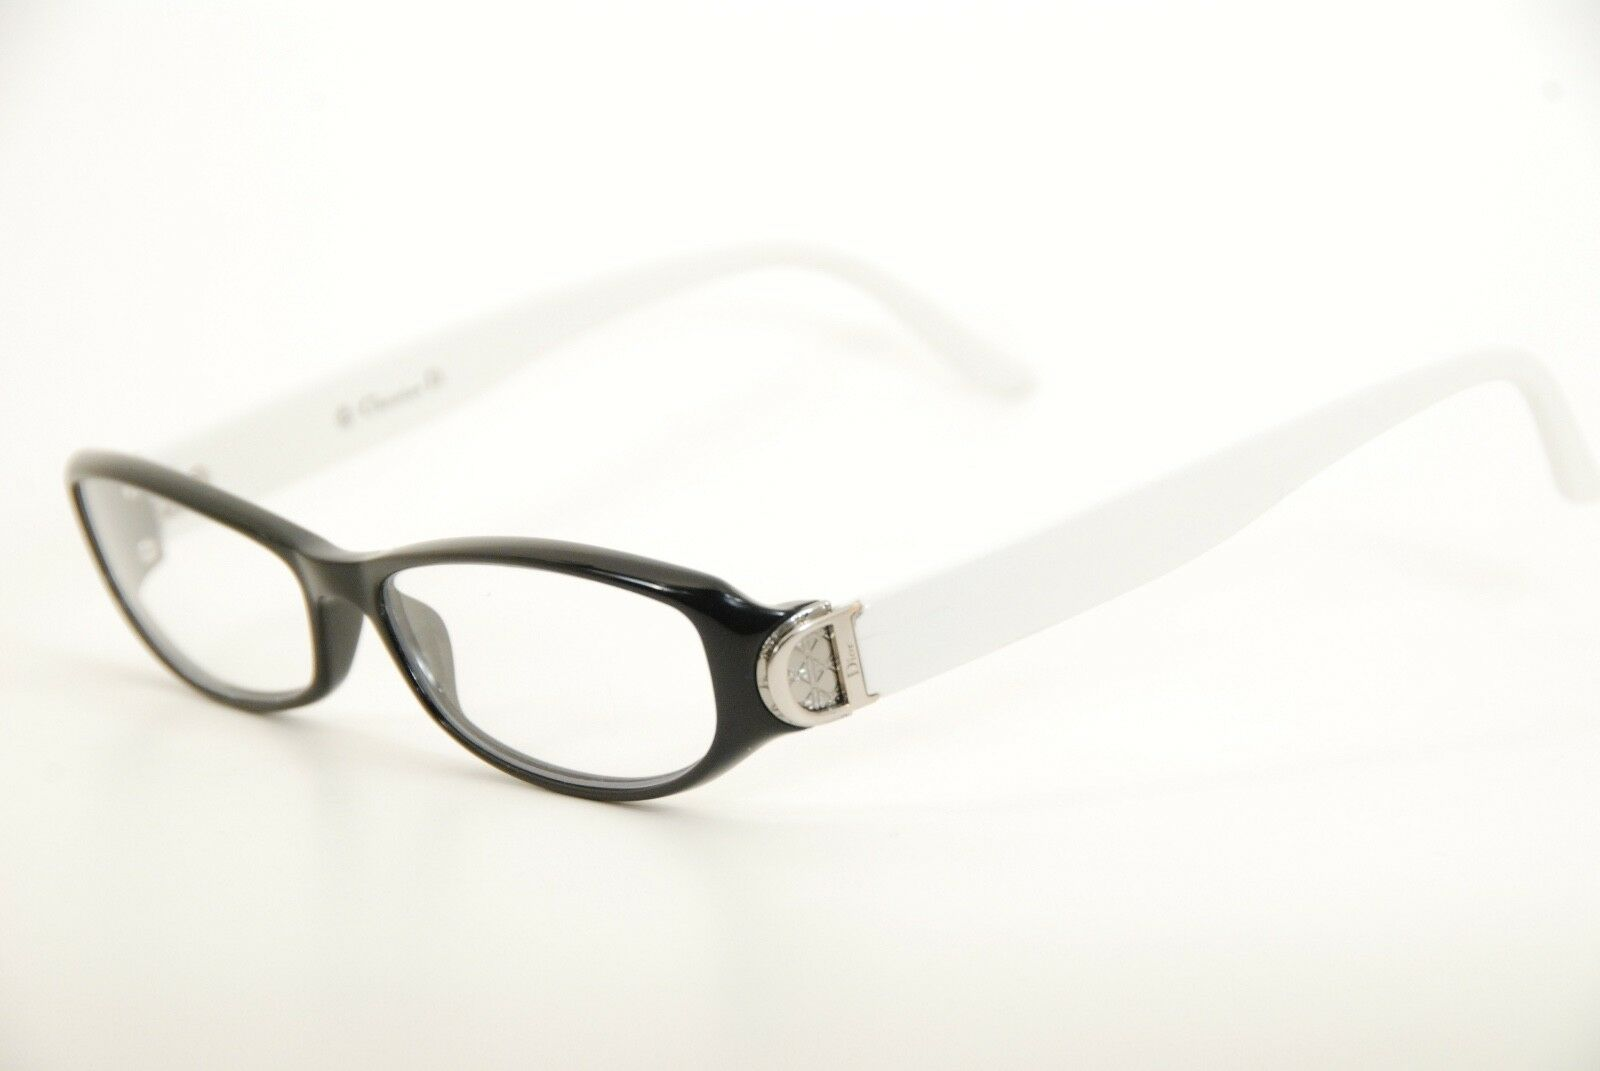 New Authentic Dior CD 3171 OVF Black/White 52mm Frames Eyeglasses Italy RX